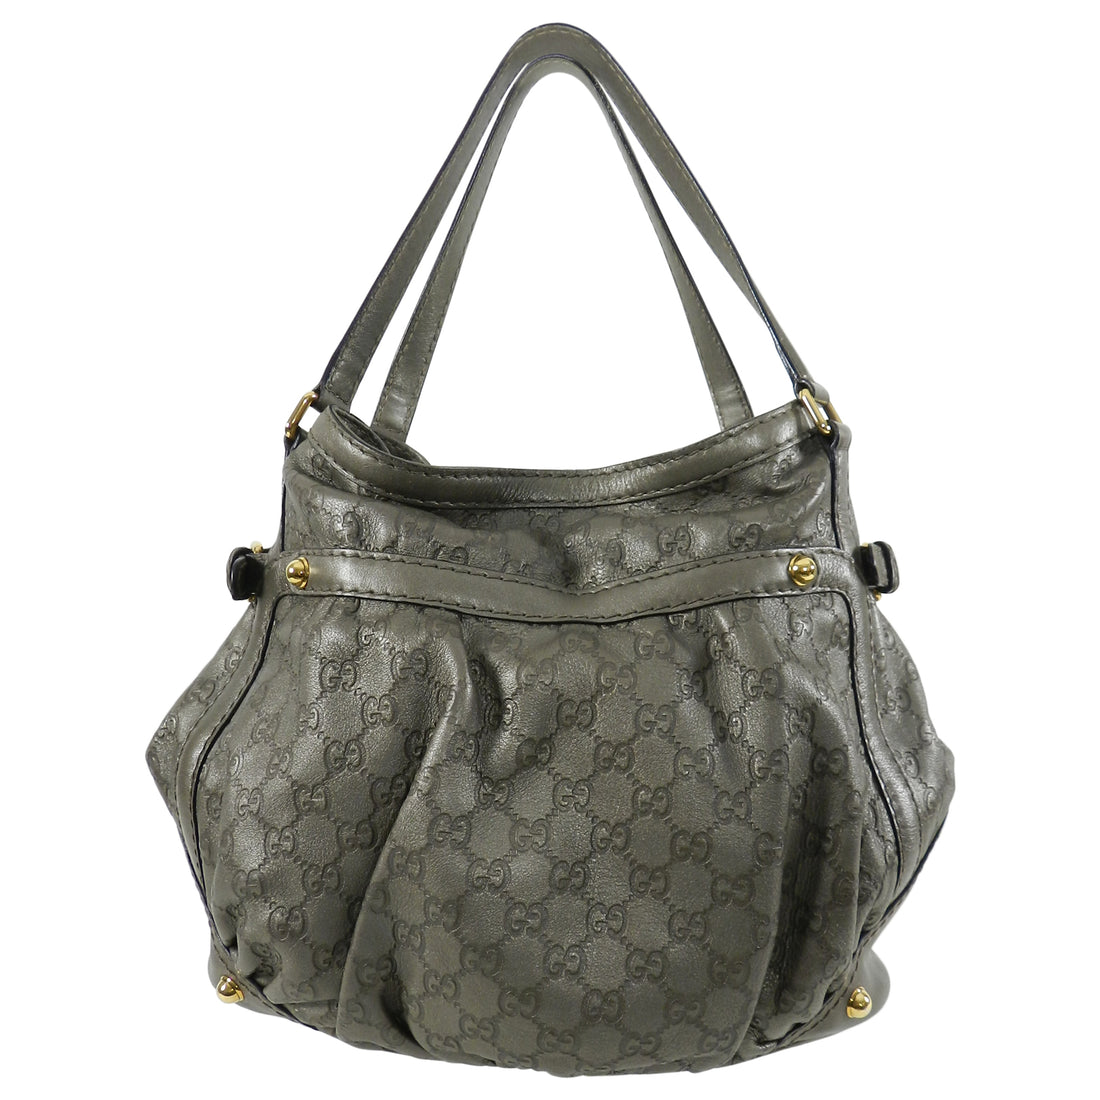 Gucci Guccissima Pewter Leather Monogram Hobo Bag with Gold Tone Hardware